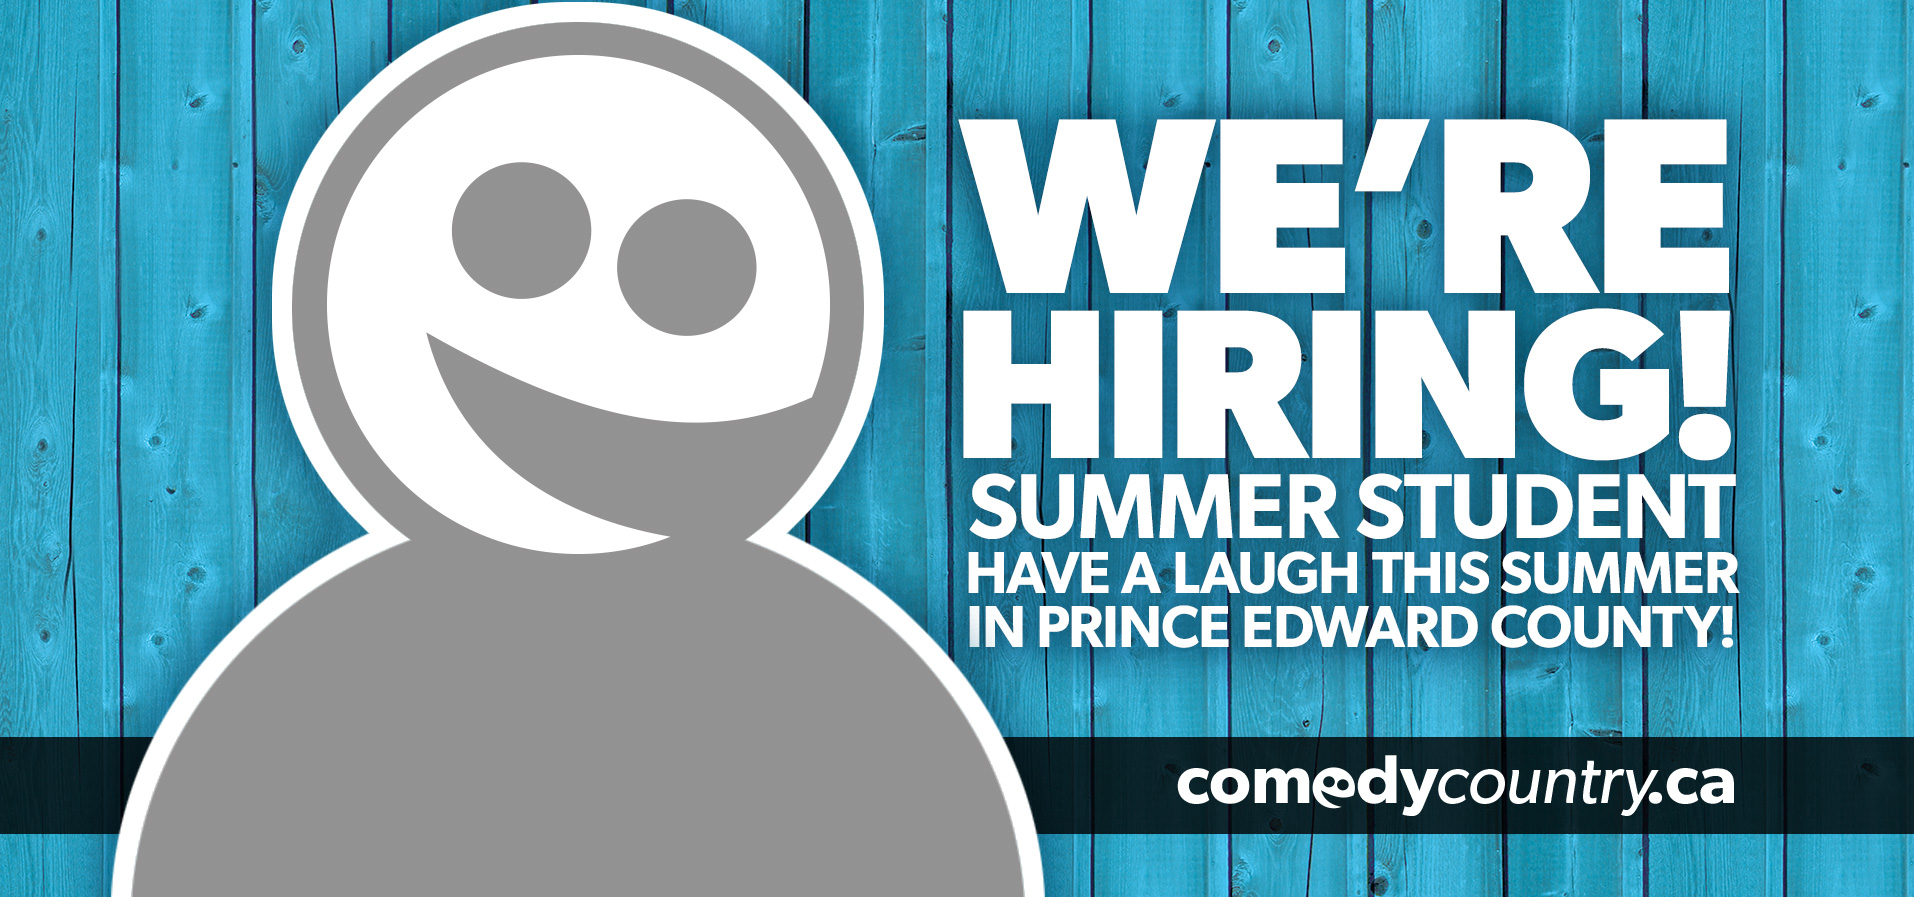 Comedy Country is Hiring!